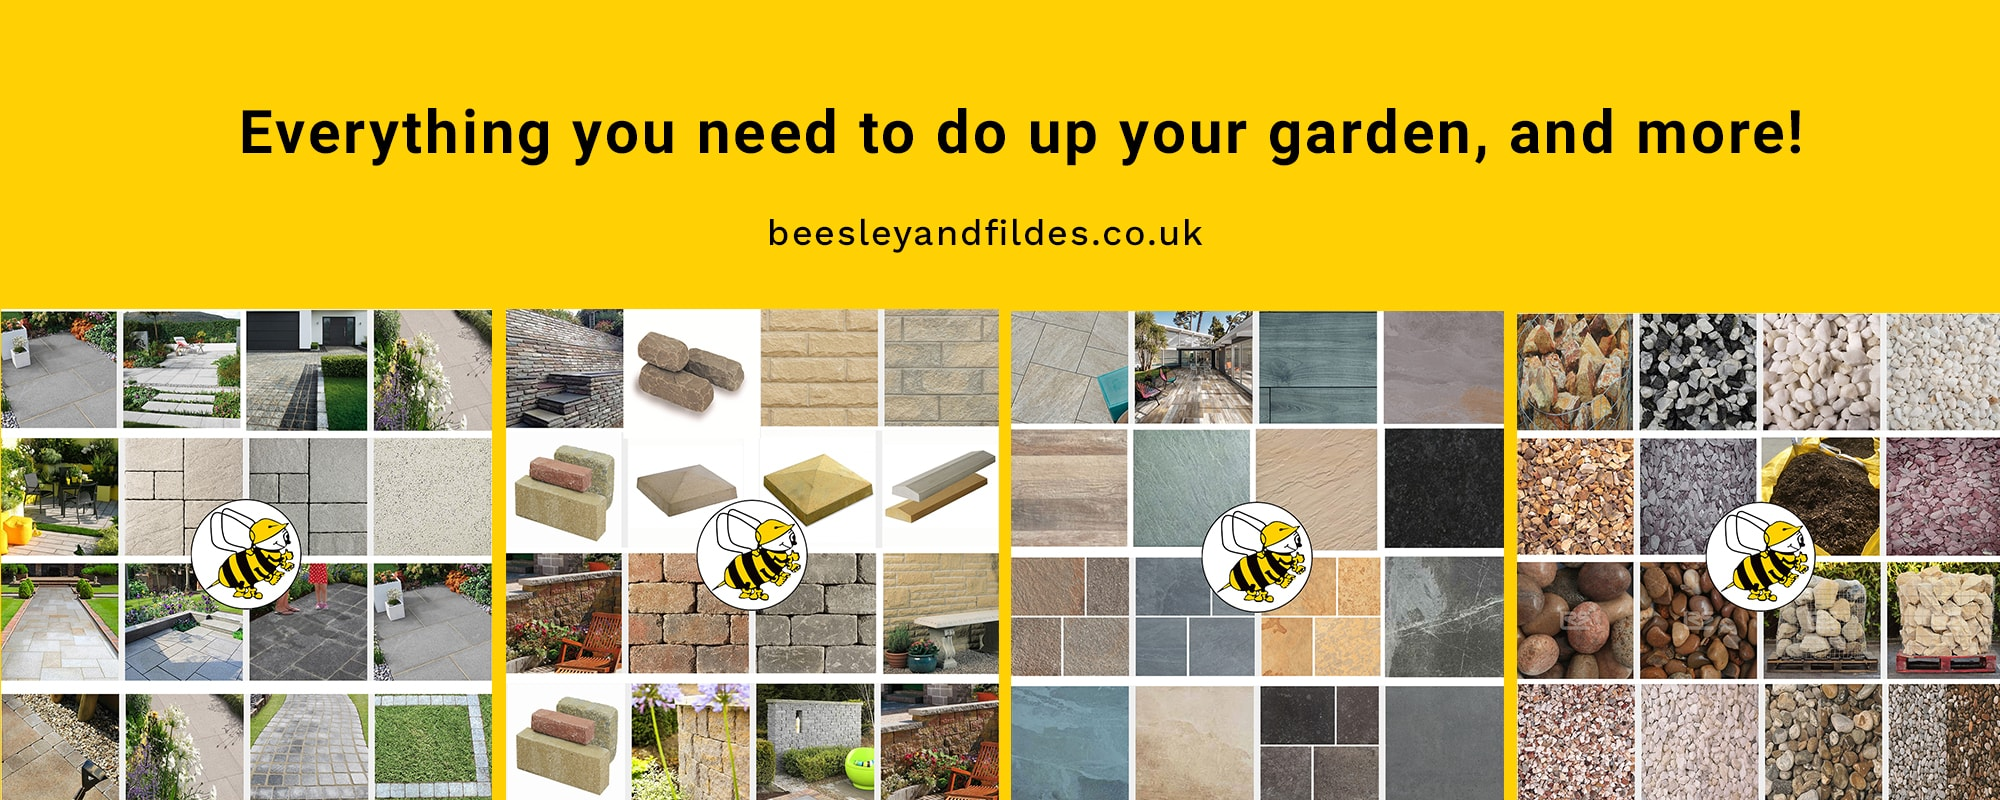 Buy landscaping materials - Beesley & Fildes - liverpool - Builders Merchant